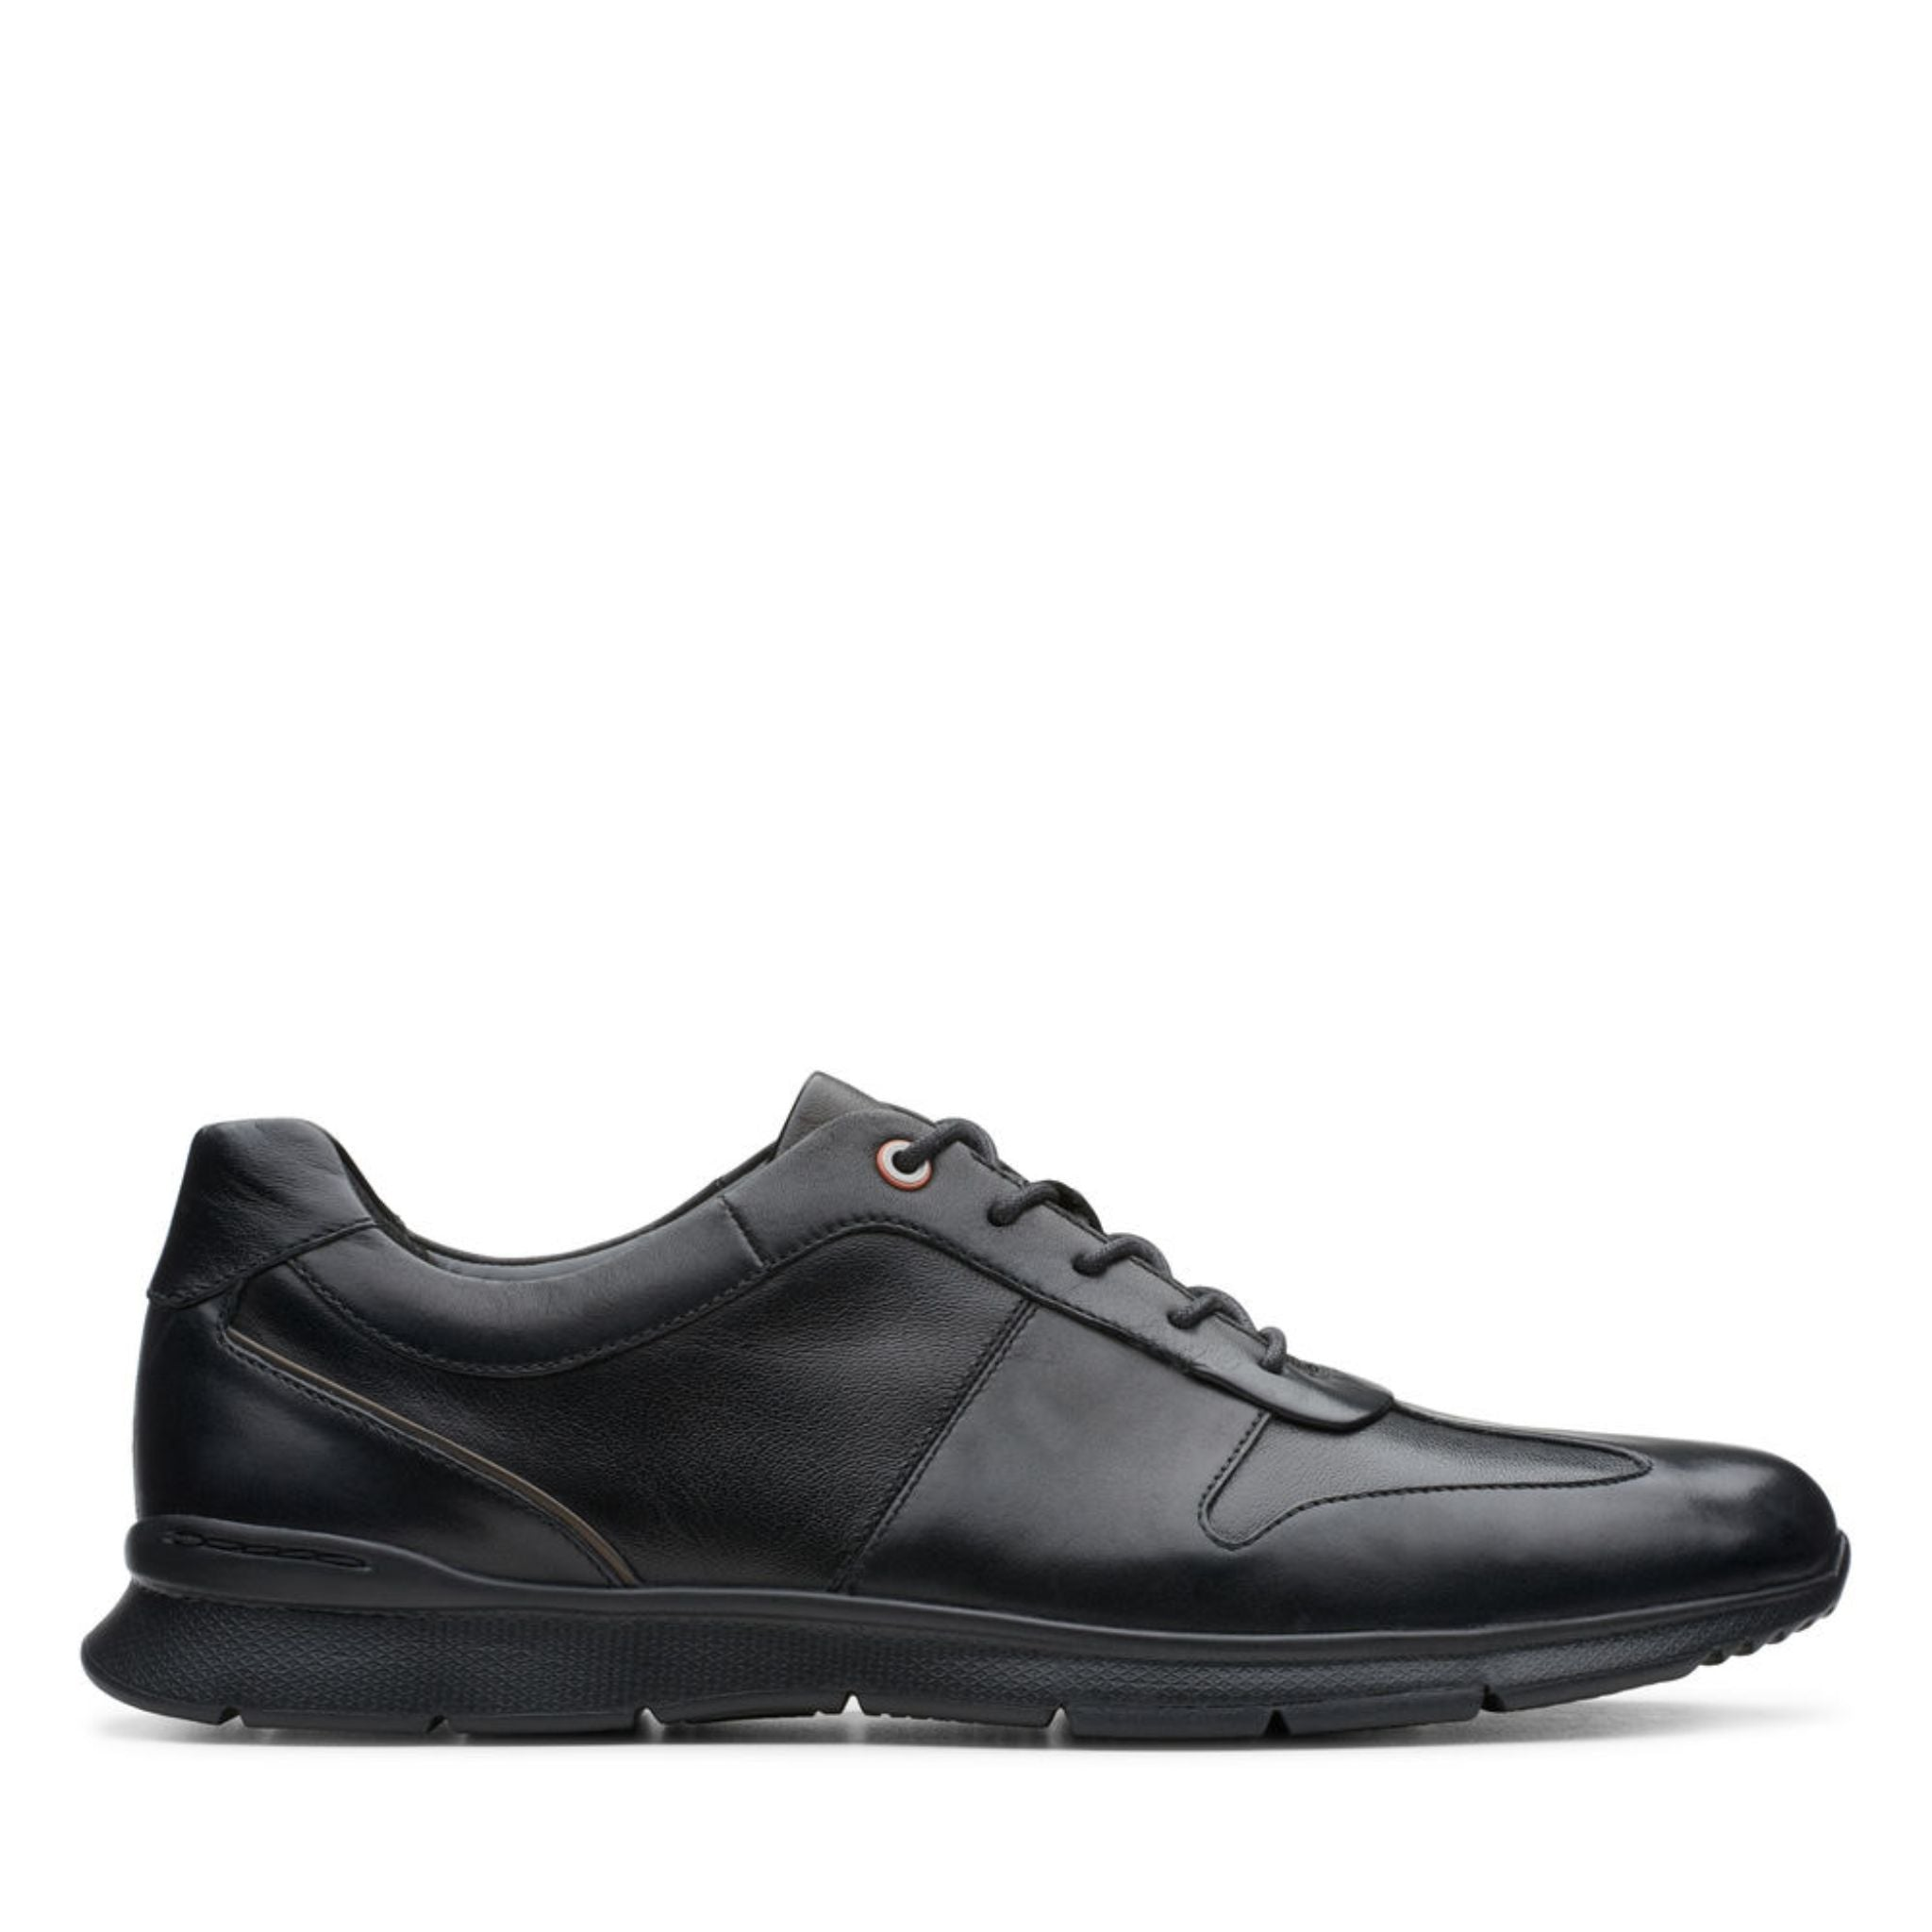 Clarks Un Tynamo Tie - Black Leather